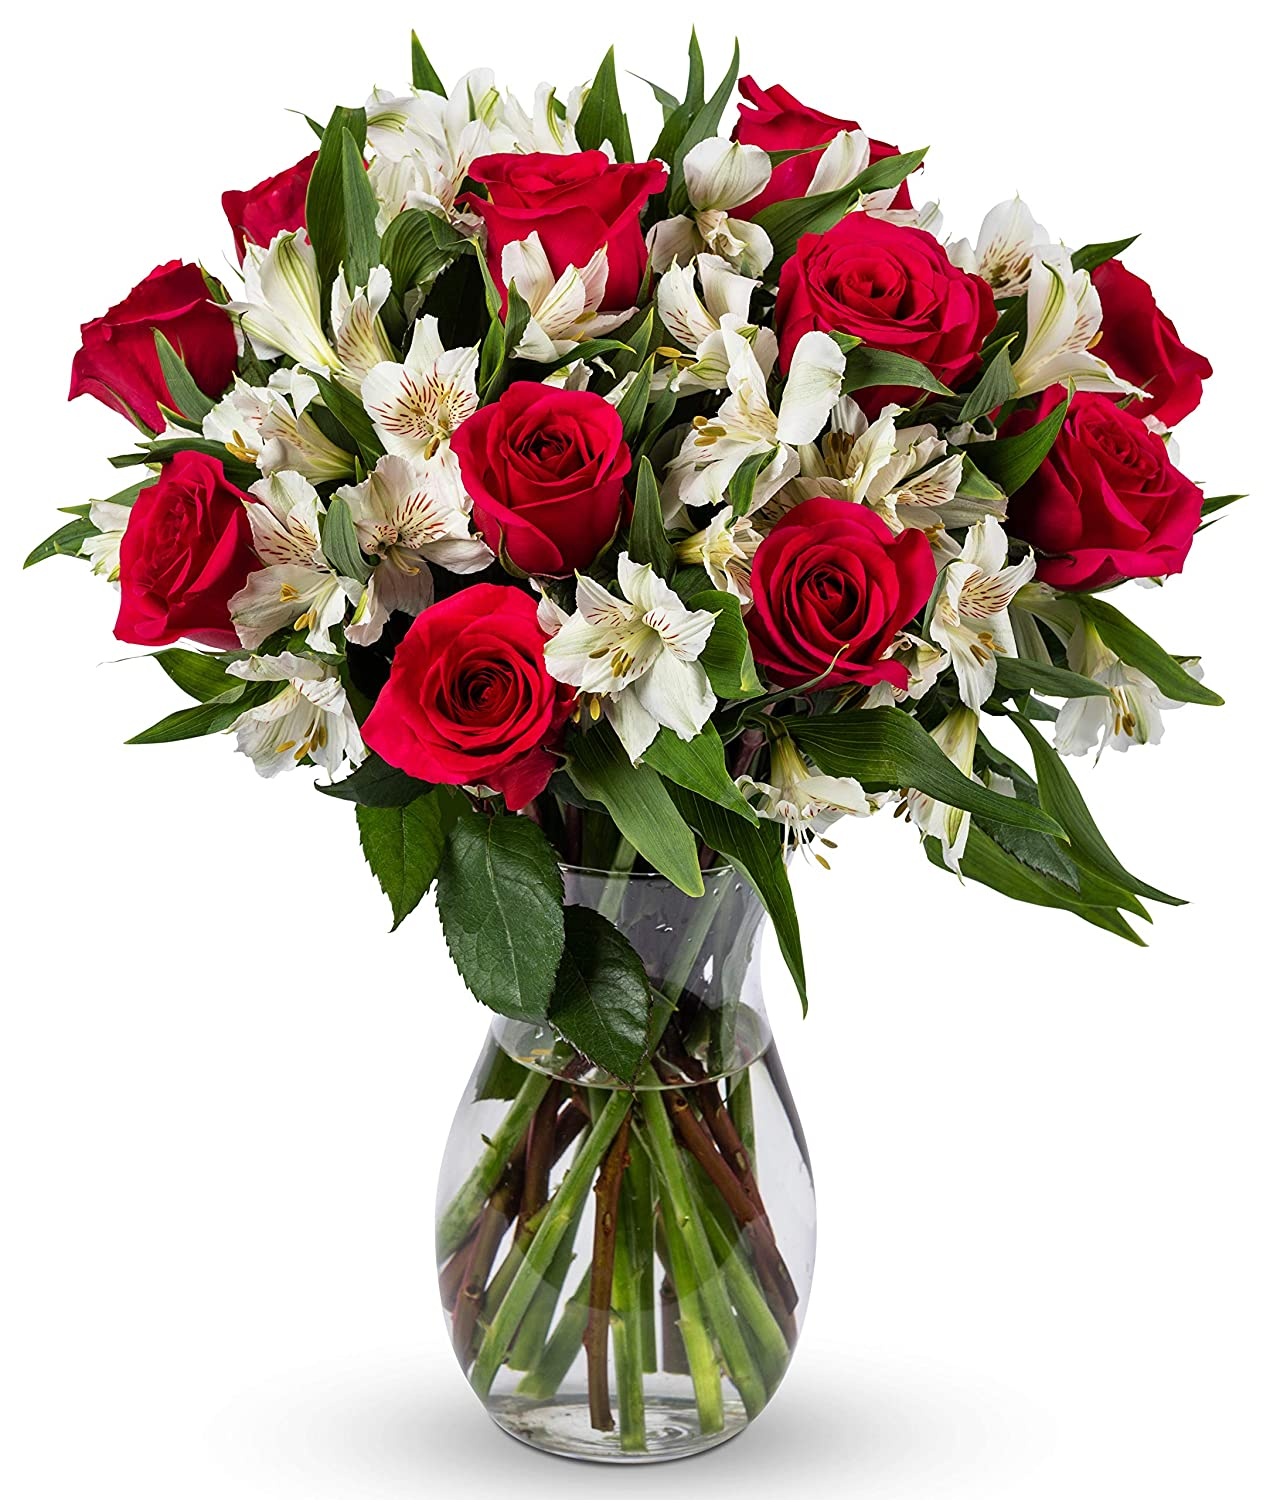 Benchmark Bouquets Signature Roses and Alstroemeria, With Vase (Fresh Cut Flowers)